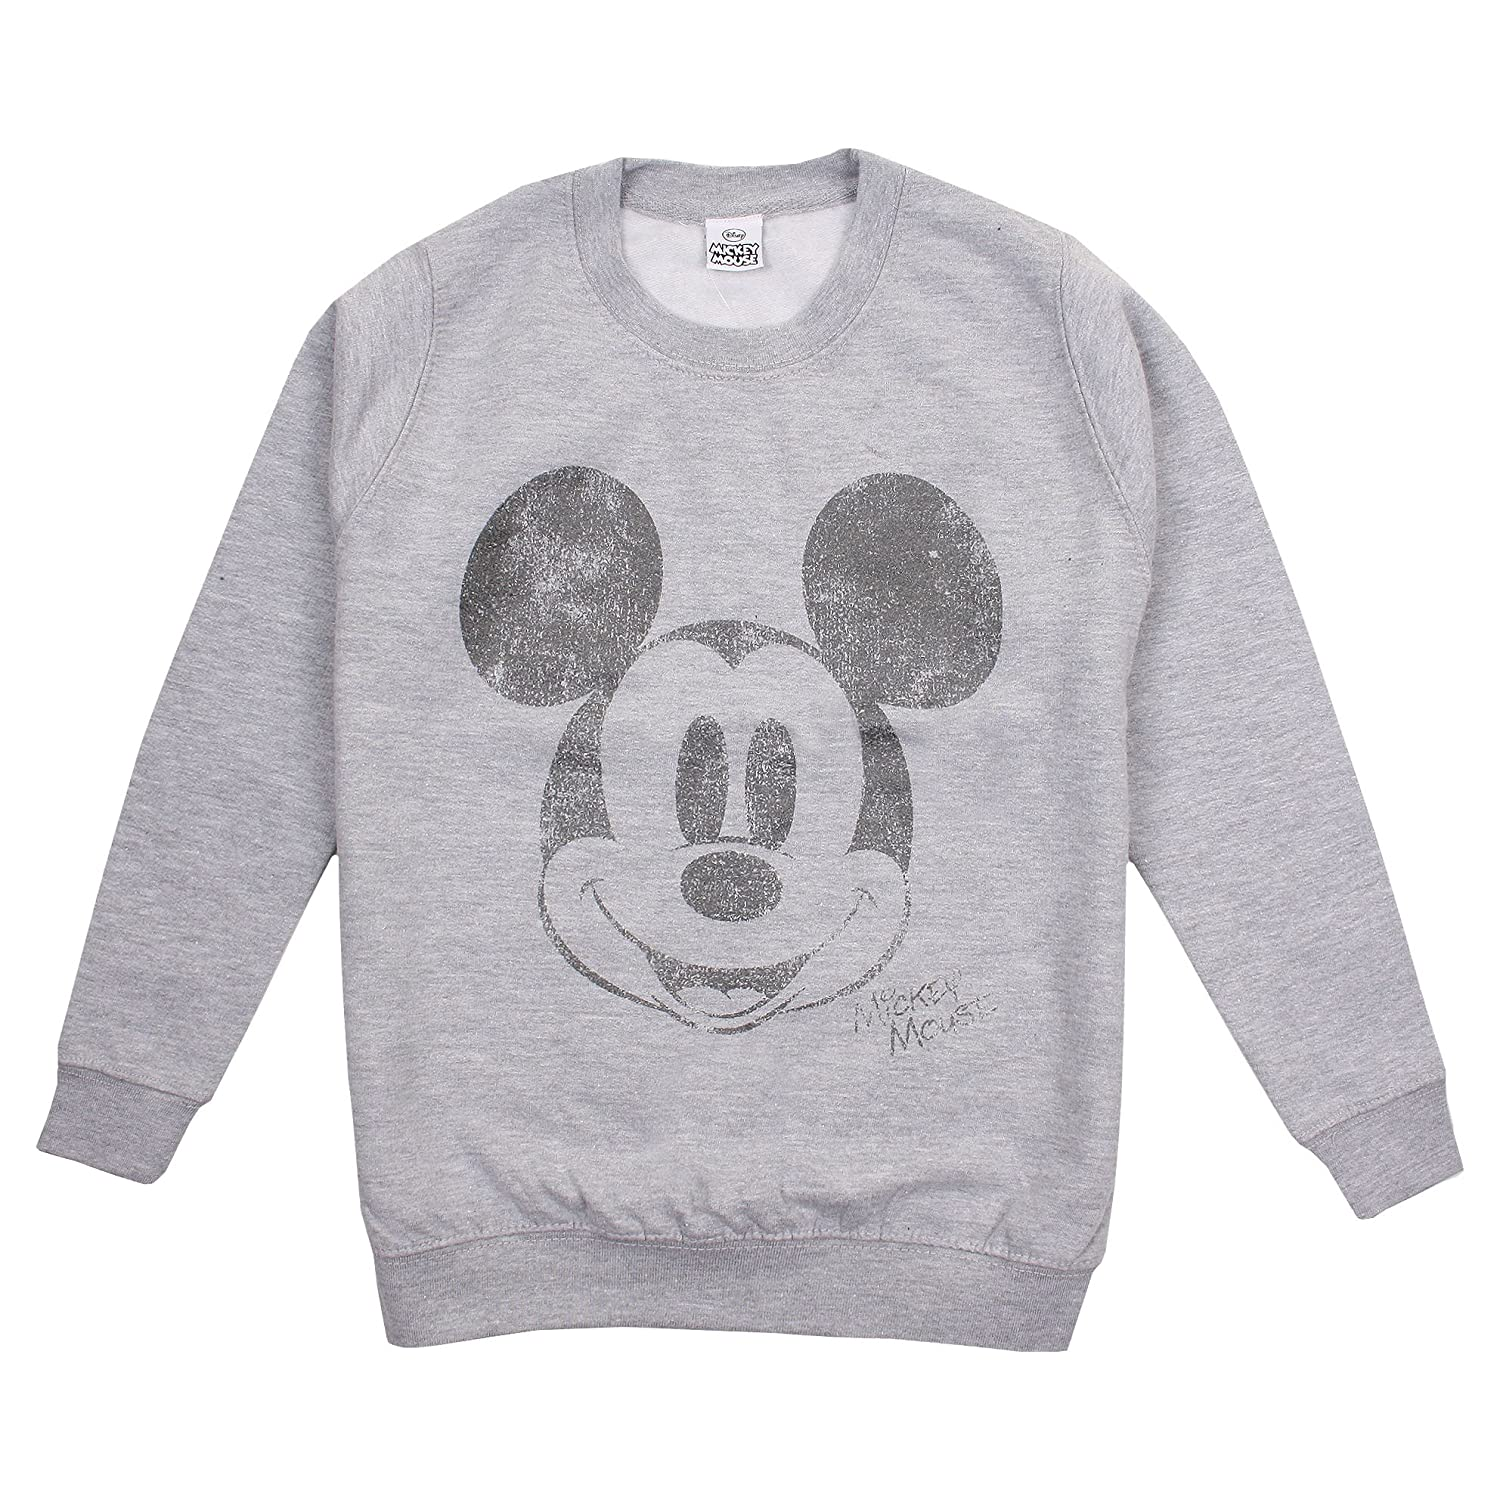 Disney Girl's Mickey Mouse Metallic Face Sweatshirt RBGCS185